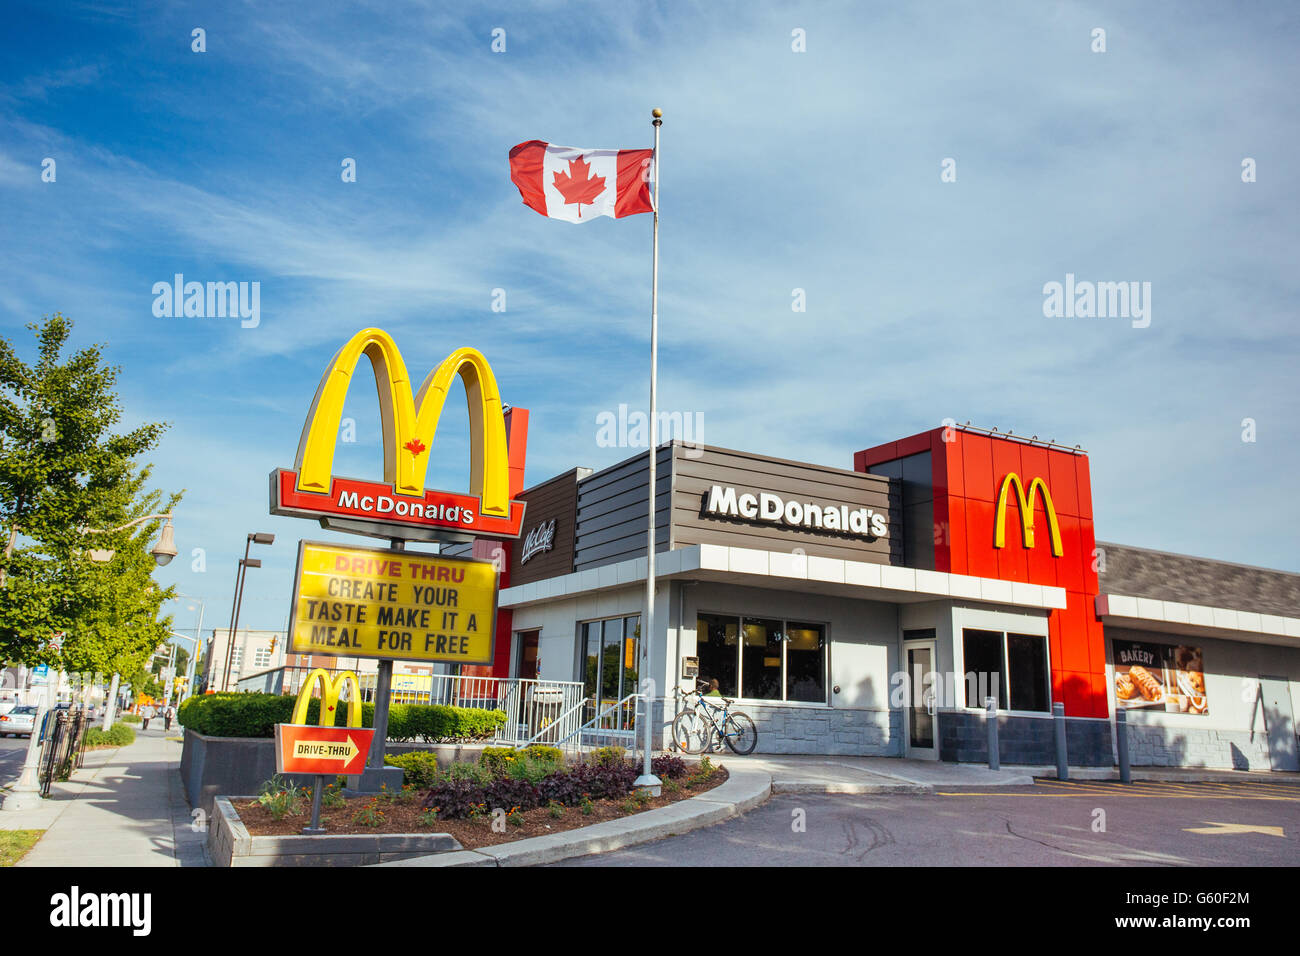 mcdonalds canada fast food restaurant exterior stock photo